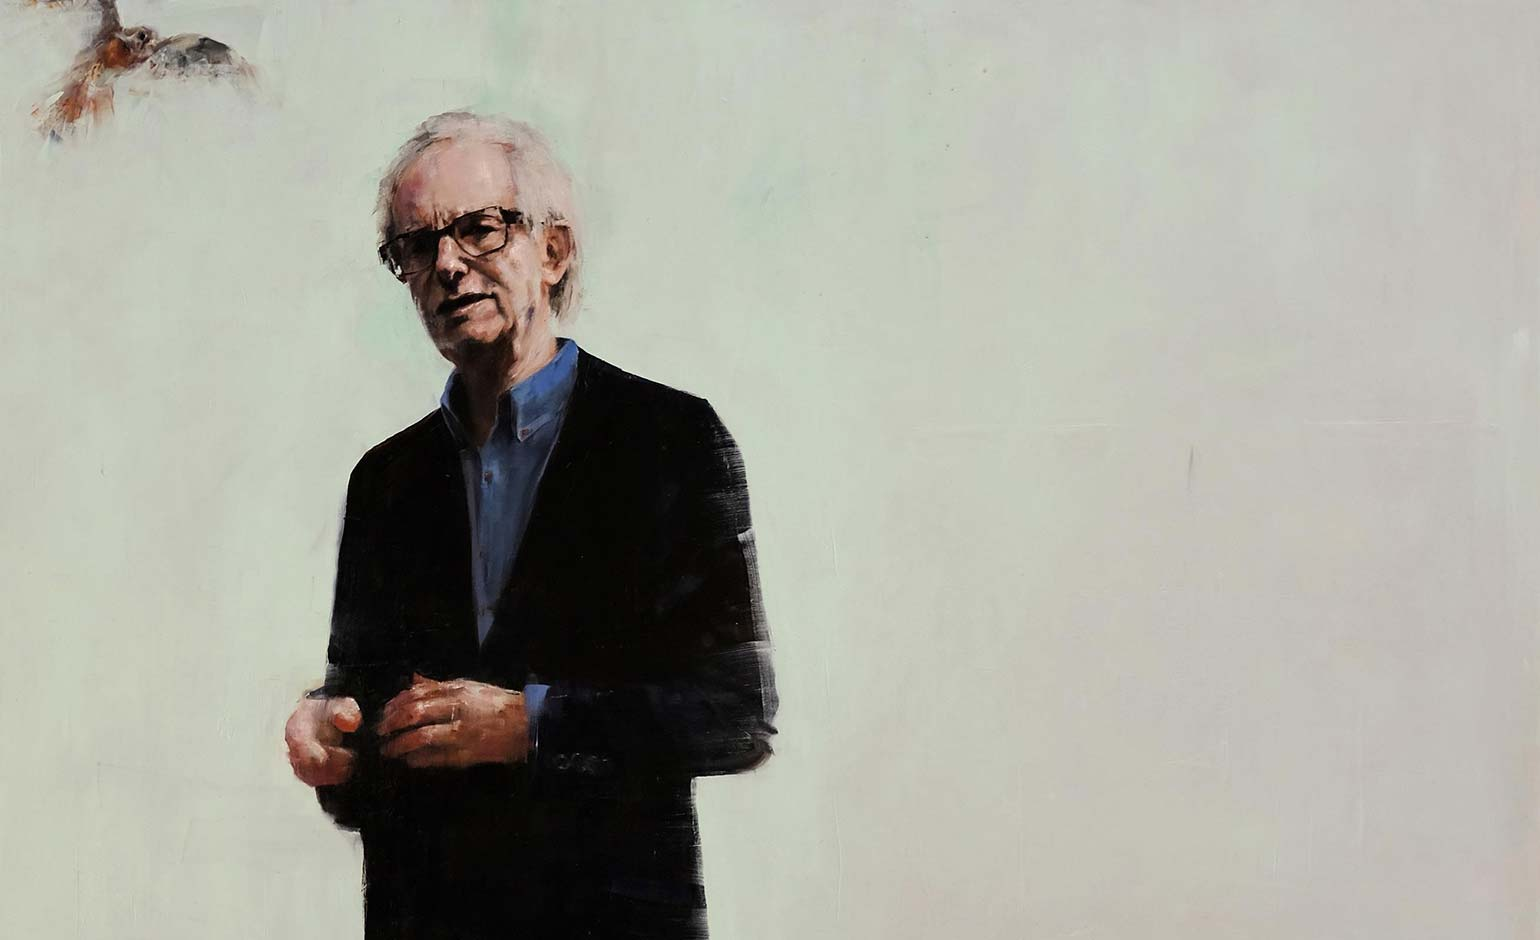 Ken Loach portrait by Richard Twose to go on show at Victoria Art Gallery